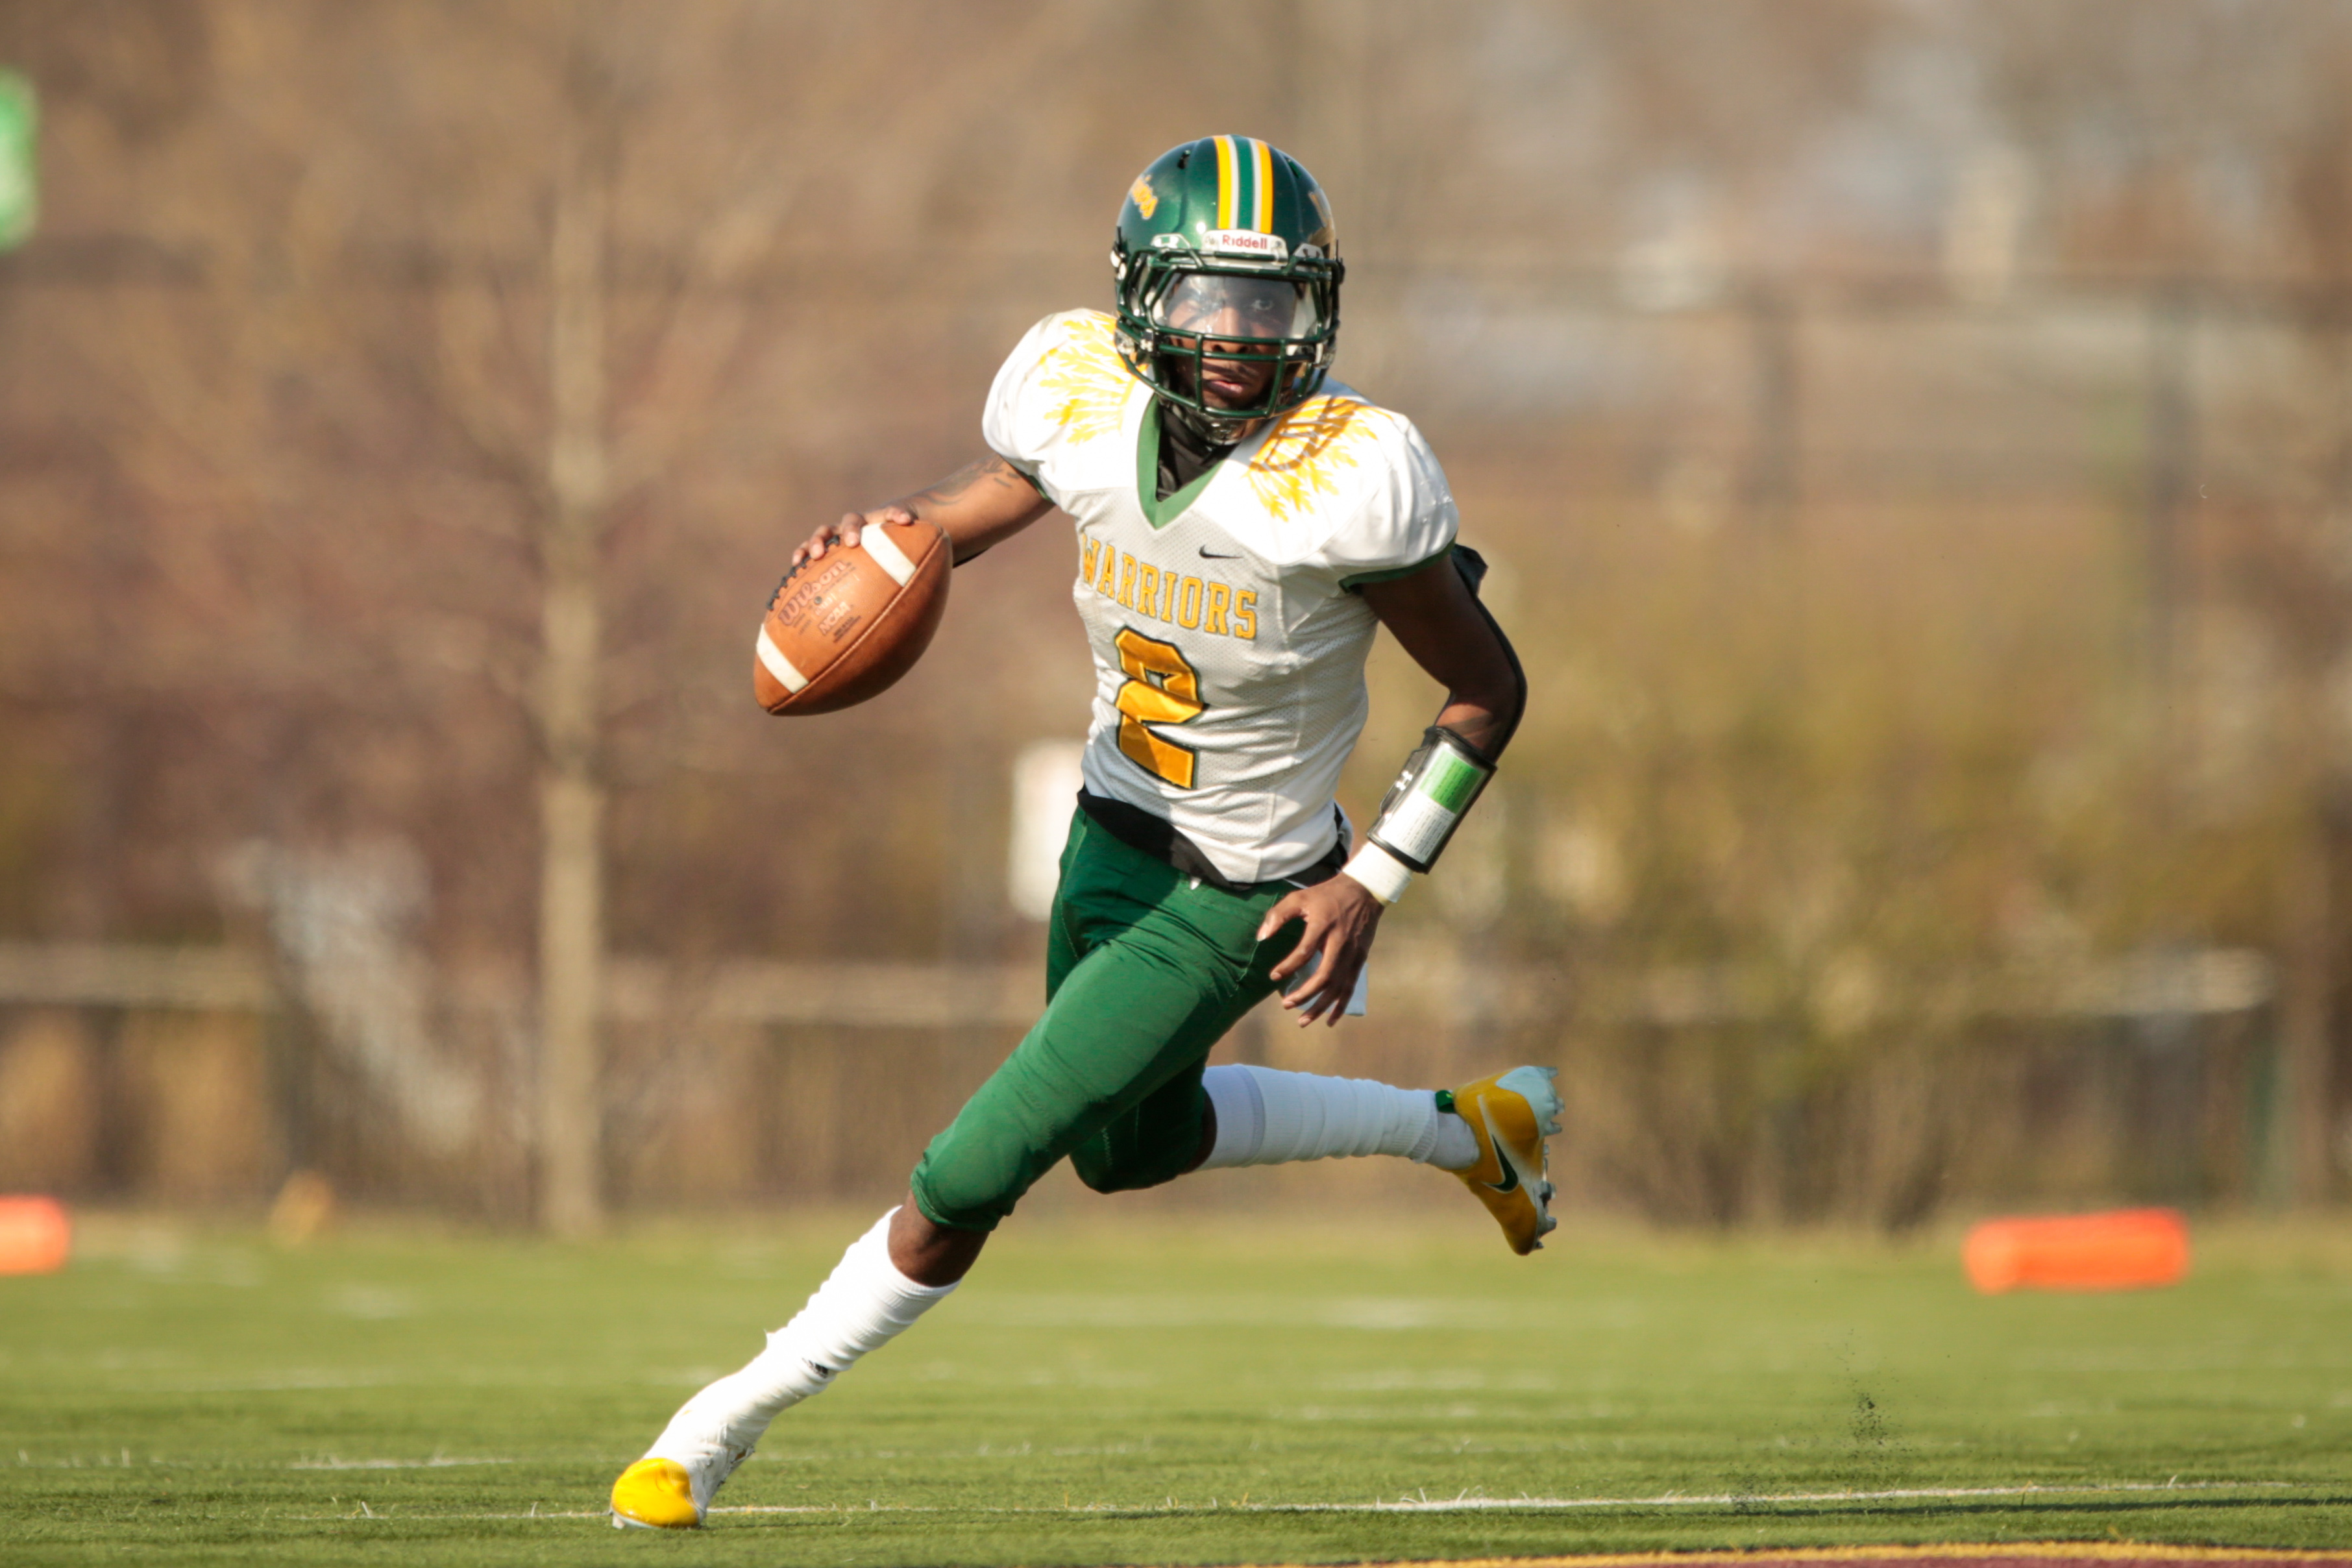 Westinghouse's Kejuan Pitts (2) rolls out to move the ball against Phillips.